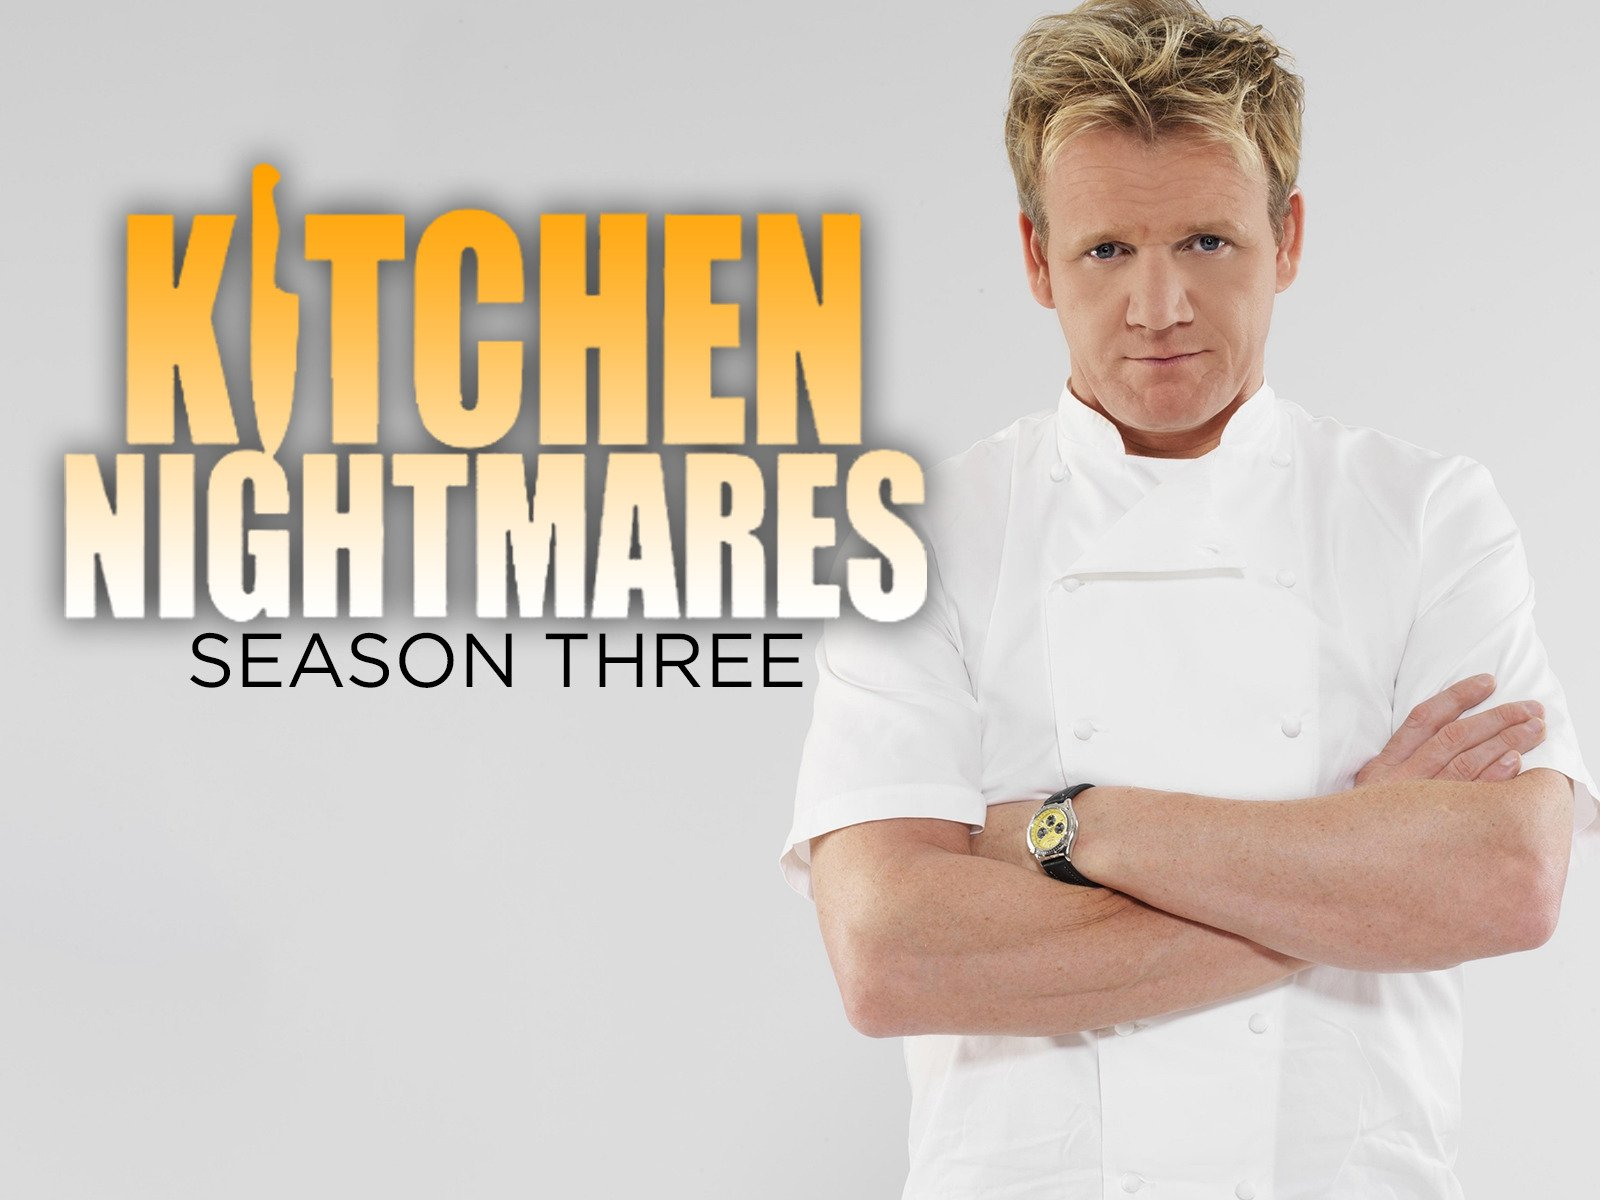 Amazon.com: Kitchen Nightmares: Gordon Ramsay, Jay Hunter, Mark S ...